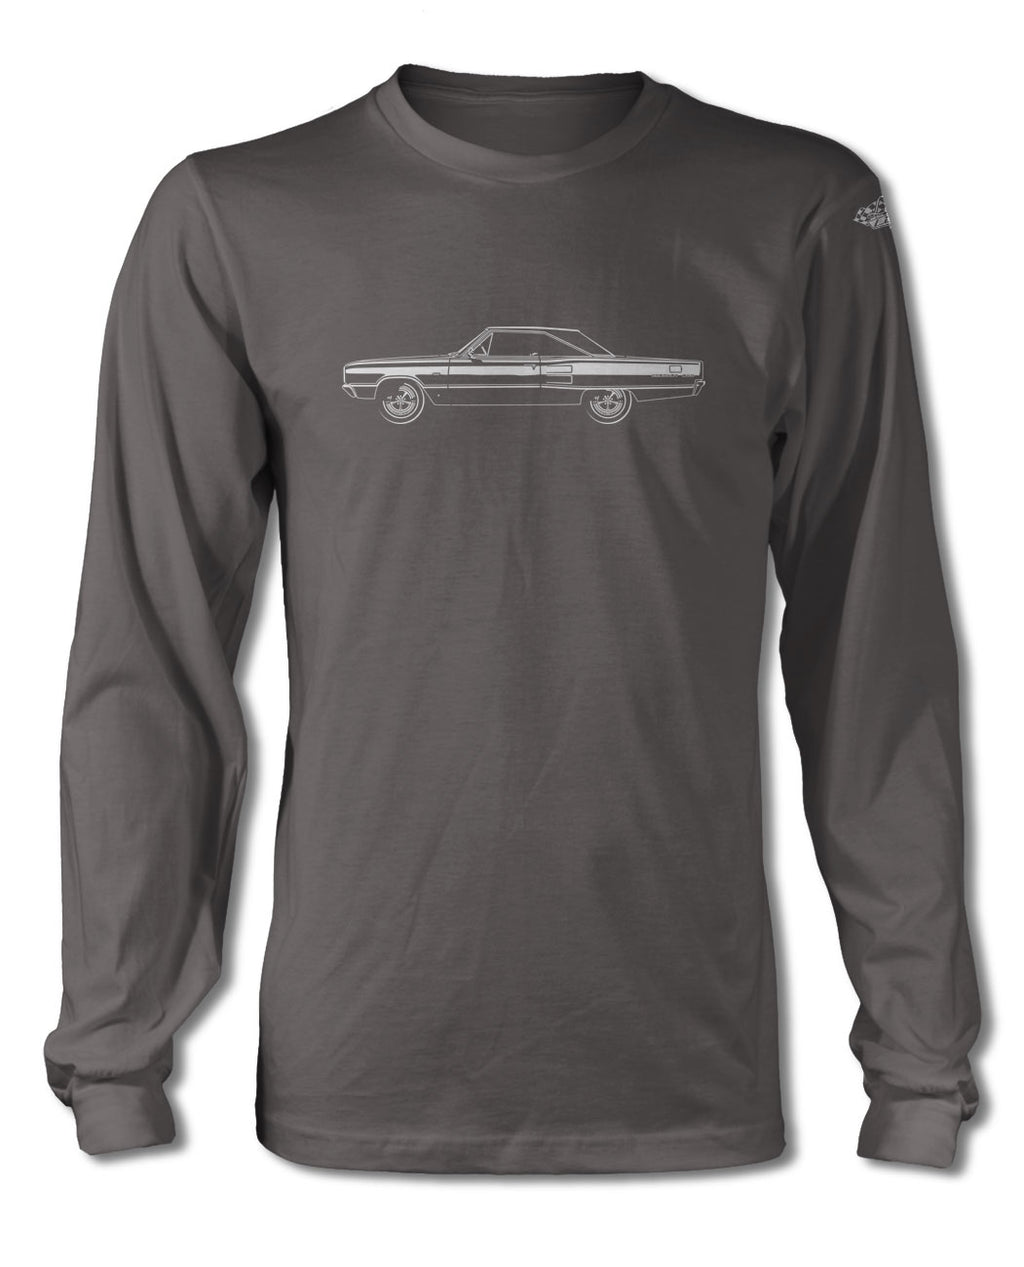 1967 Dodge Coronet 500 Hardtop T-Shirt - Long Sleeves - Side View